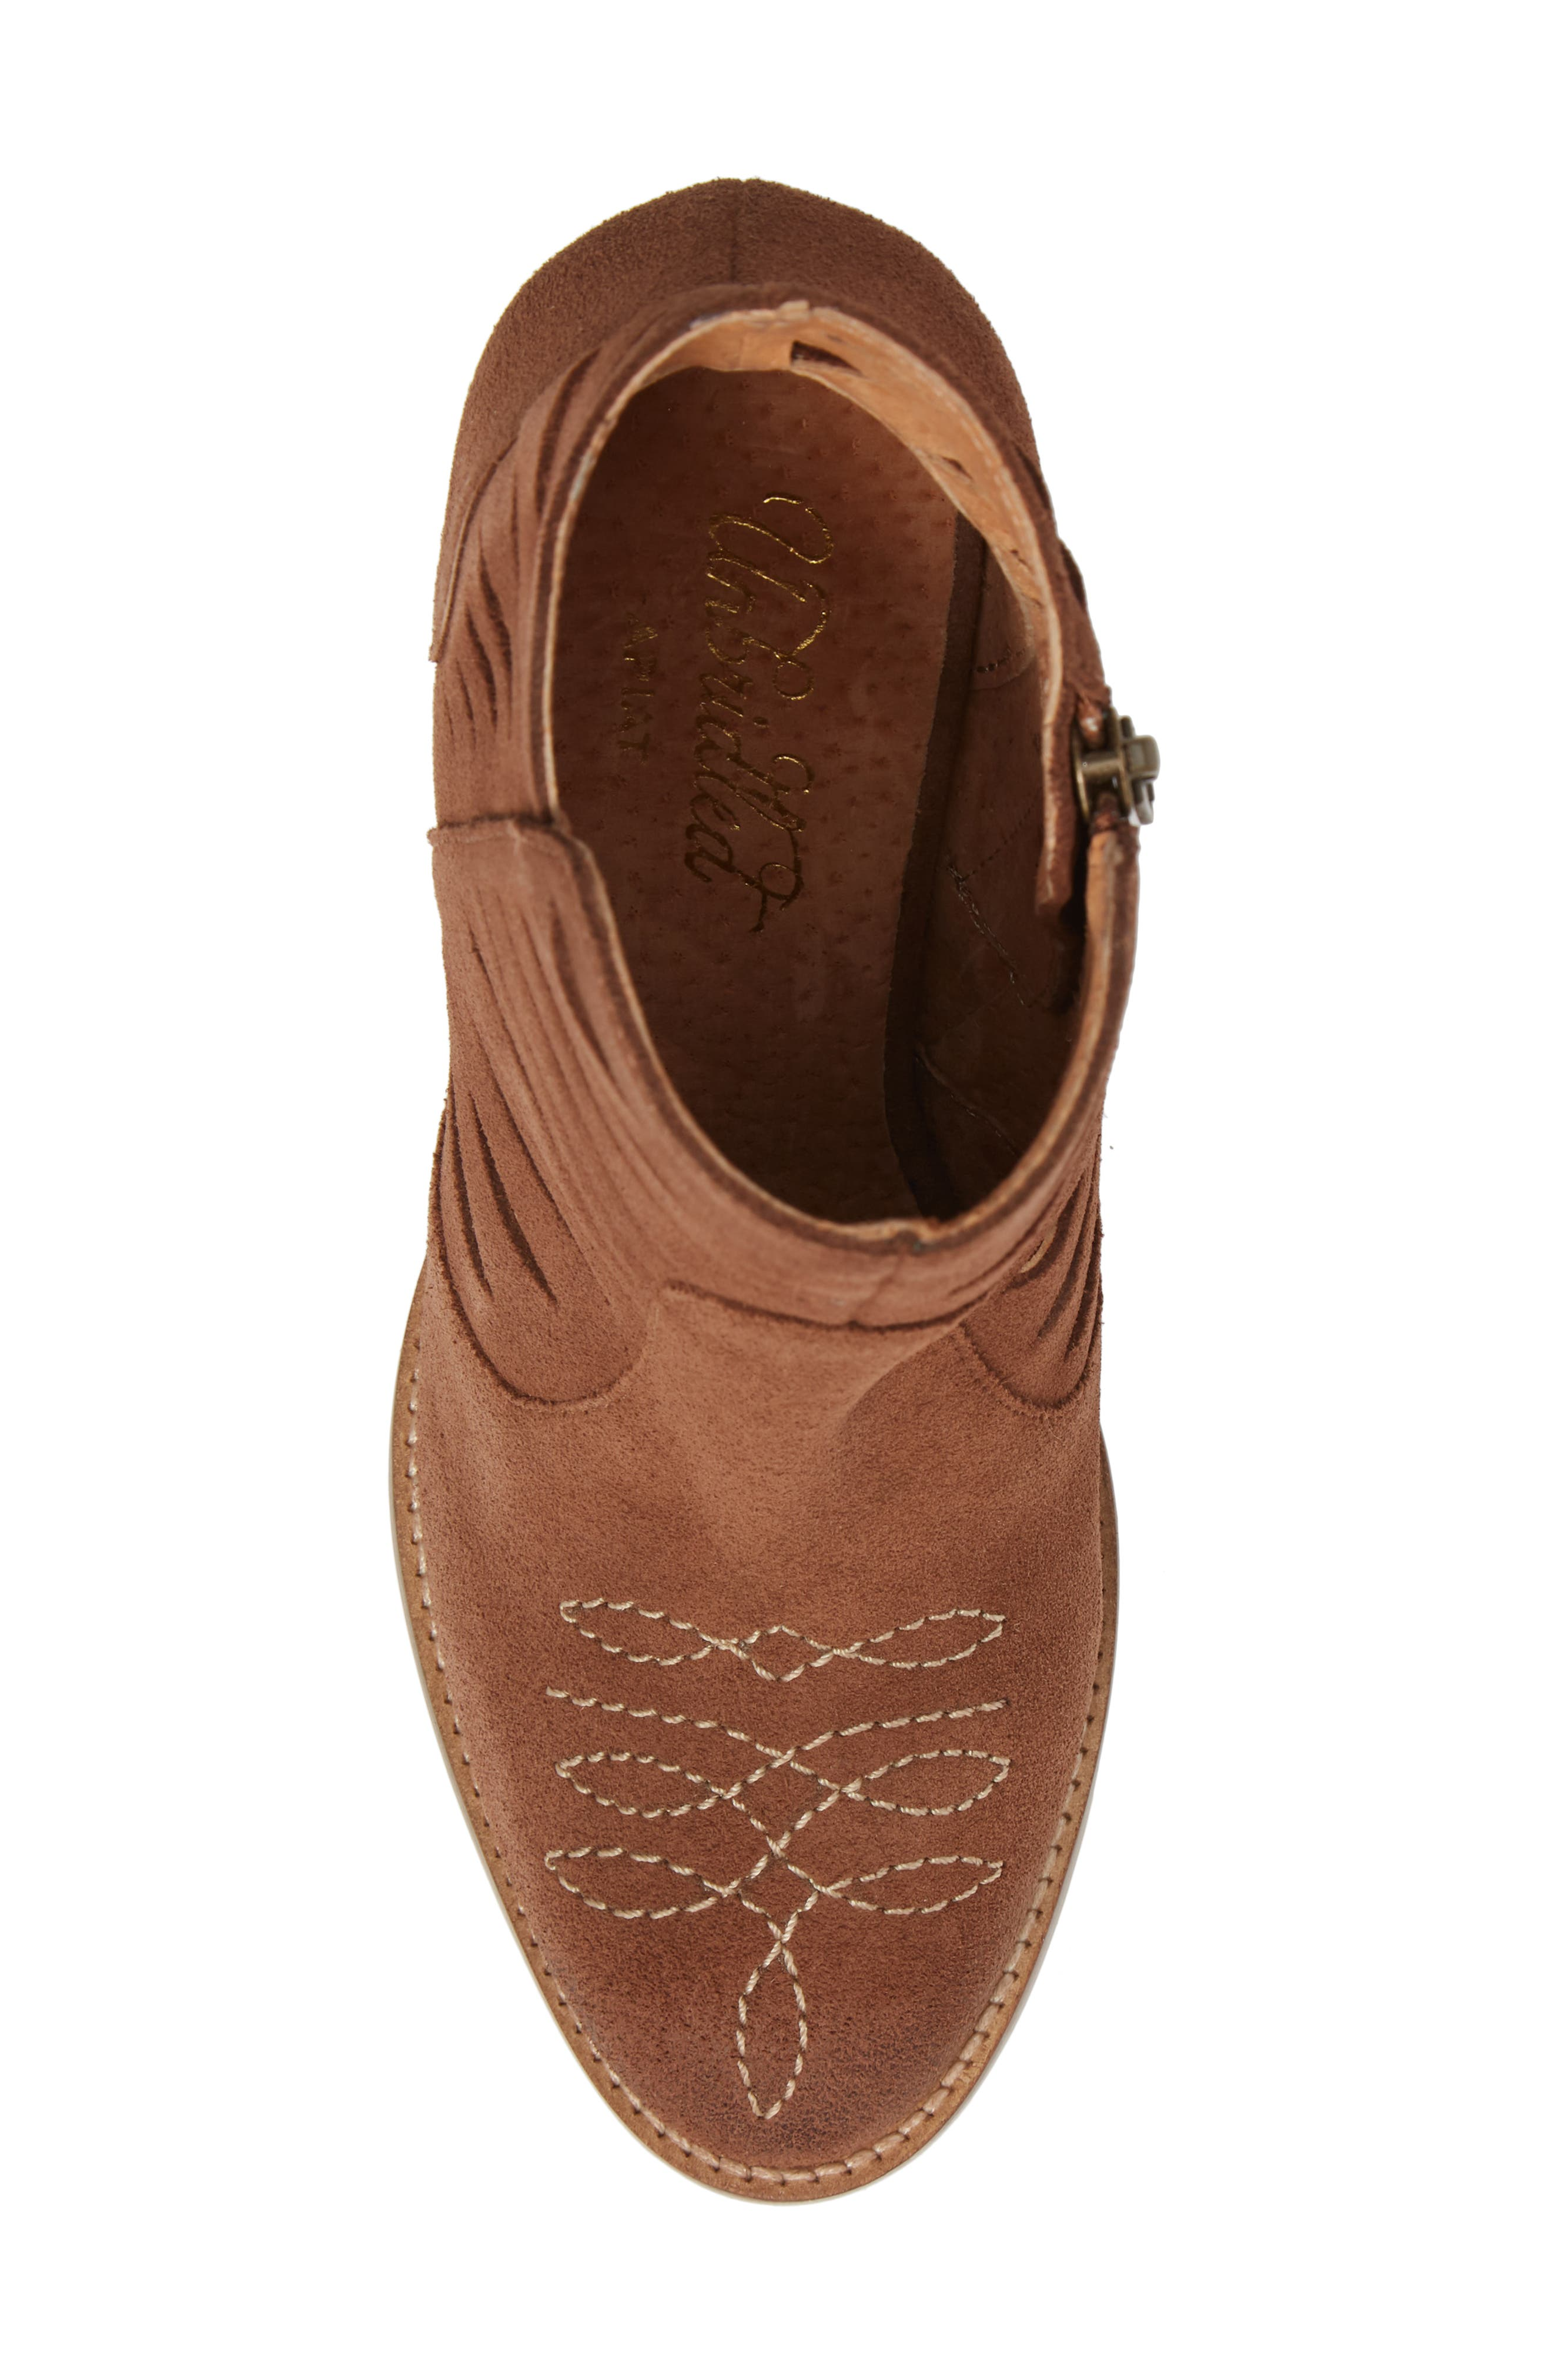 Adriana Western Bootie,                             Alternate thumbnail 5, color,                             Whiskey Suede